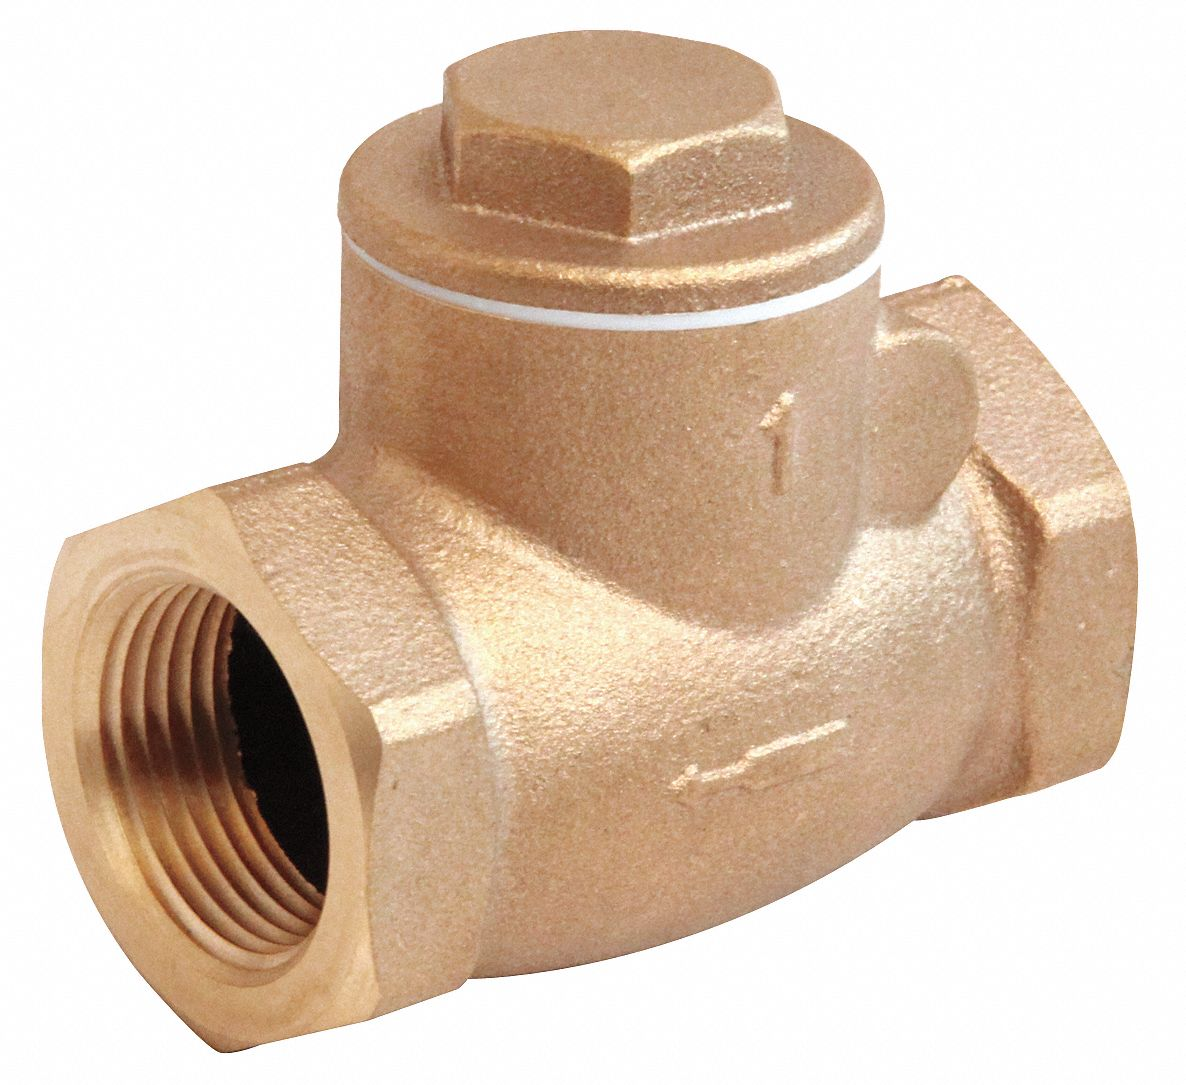 Check Valves And Backflow Preventers